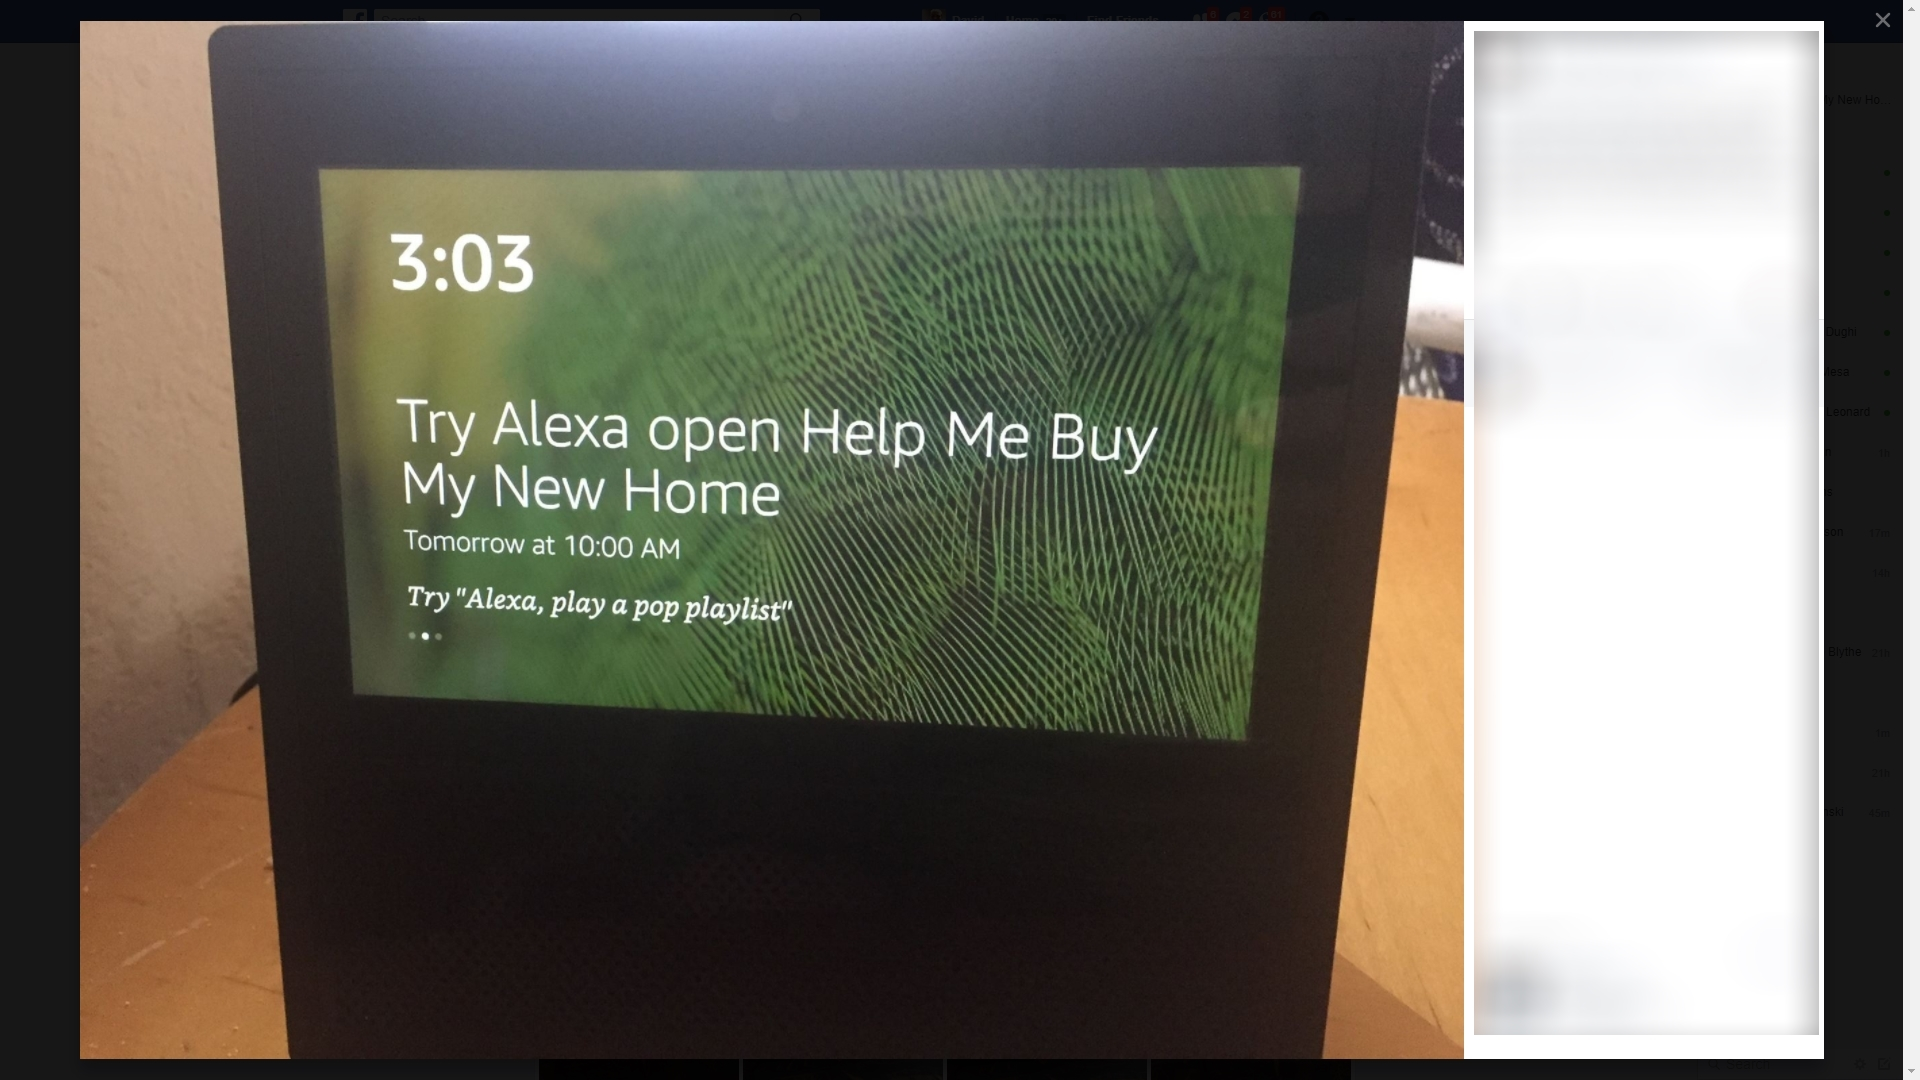 Say Alexa, open Help Me Buy My New Home once the skill is enabled to get started.